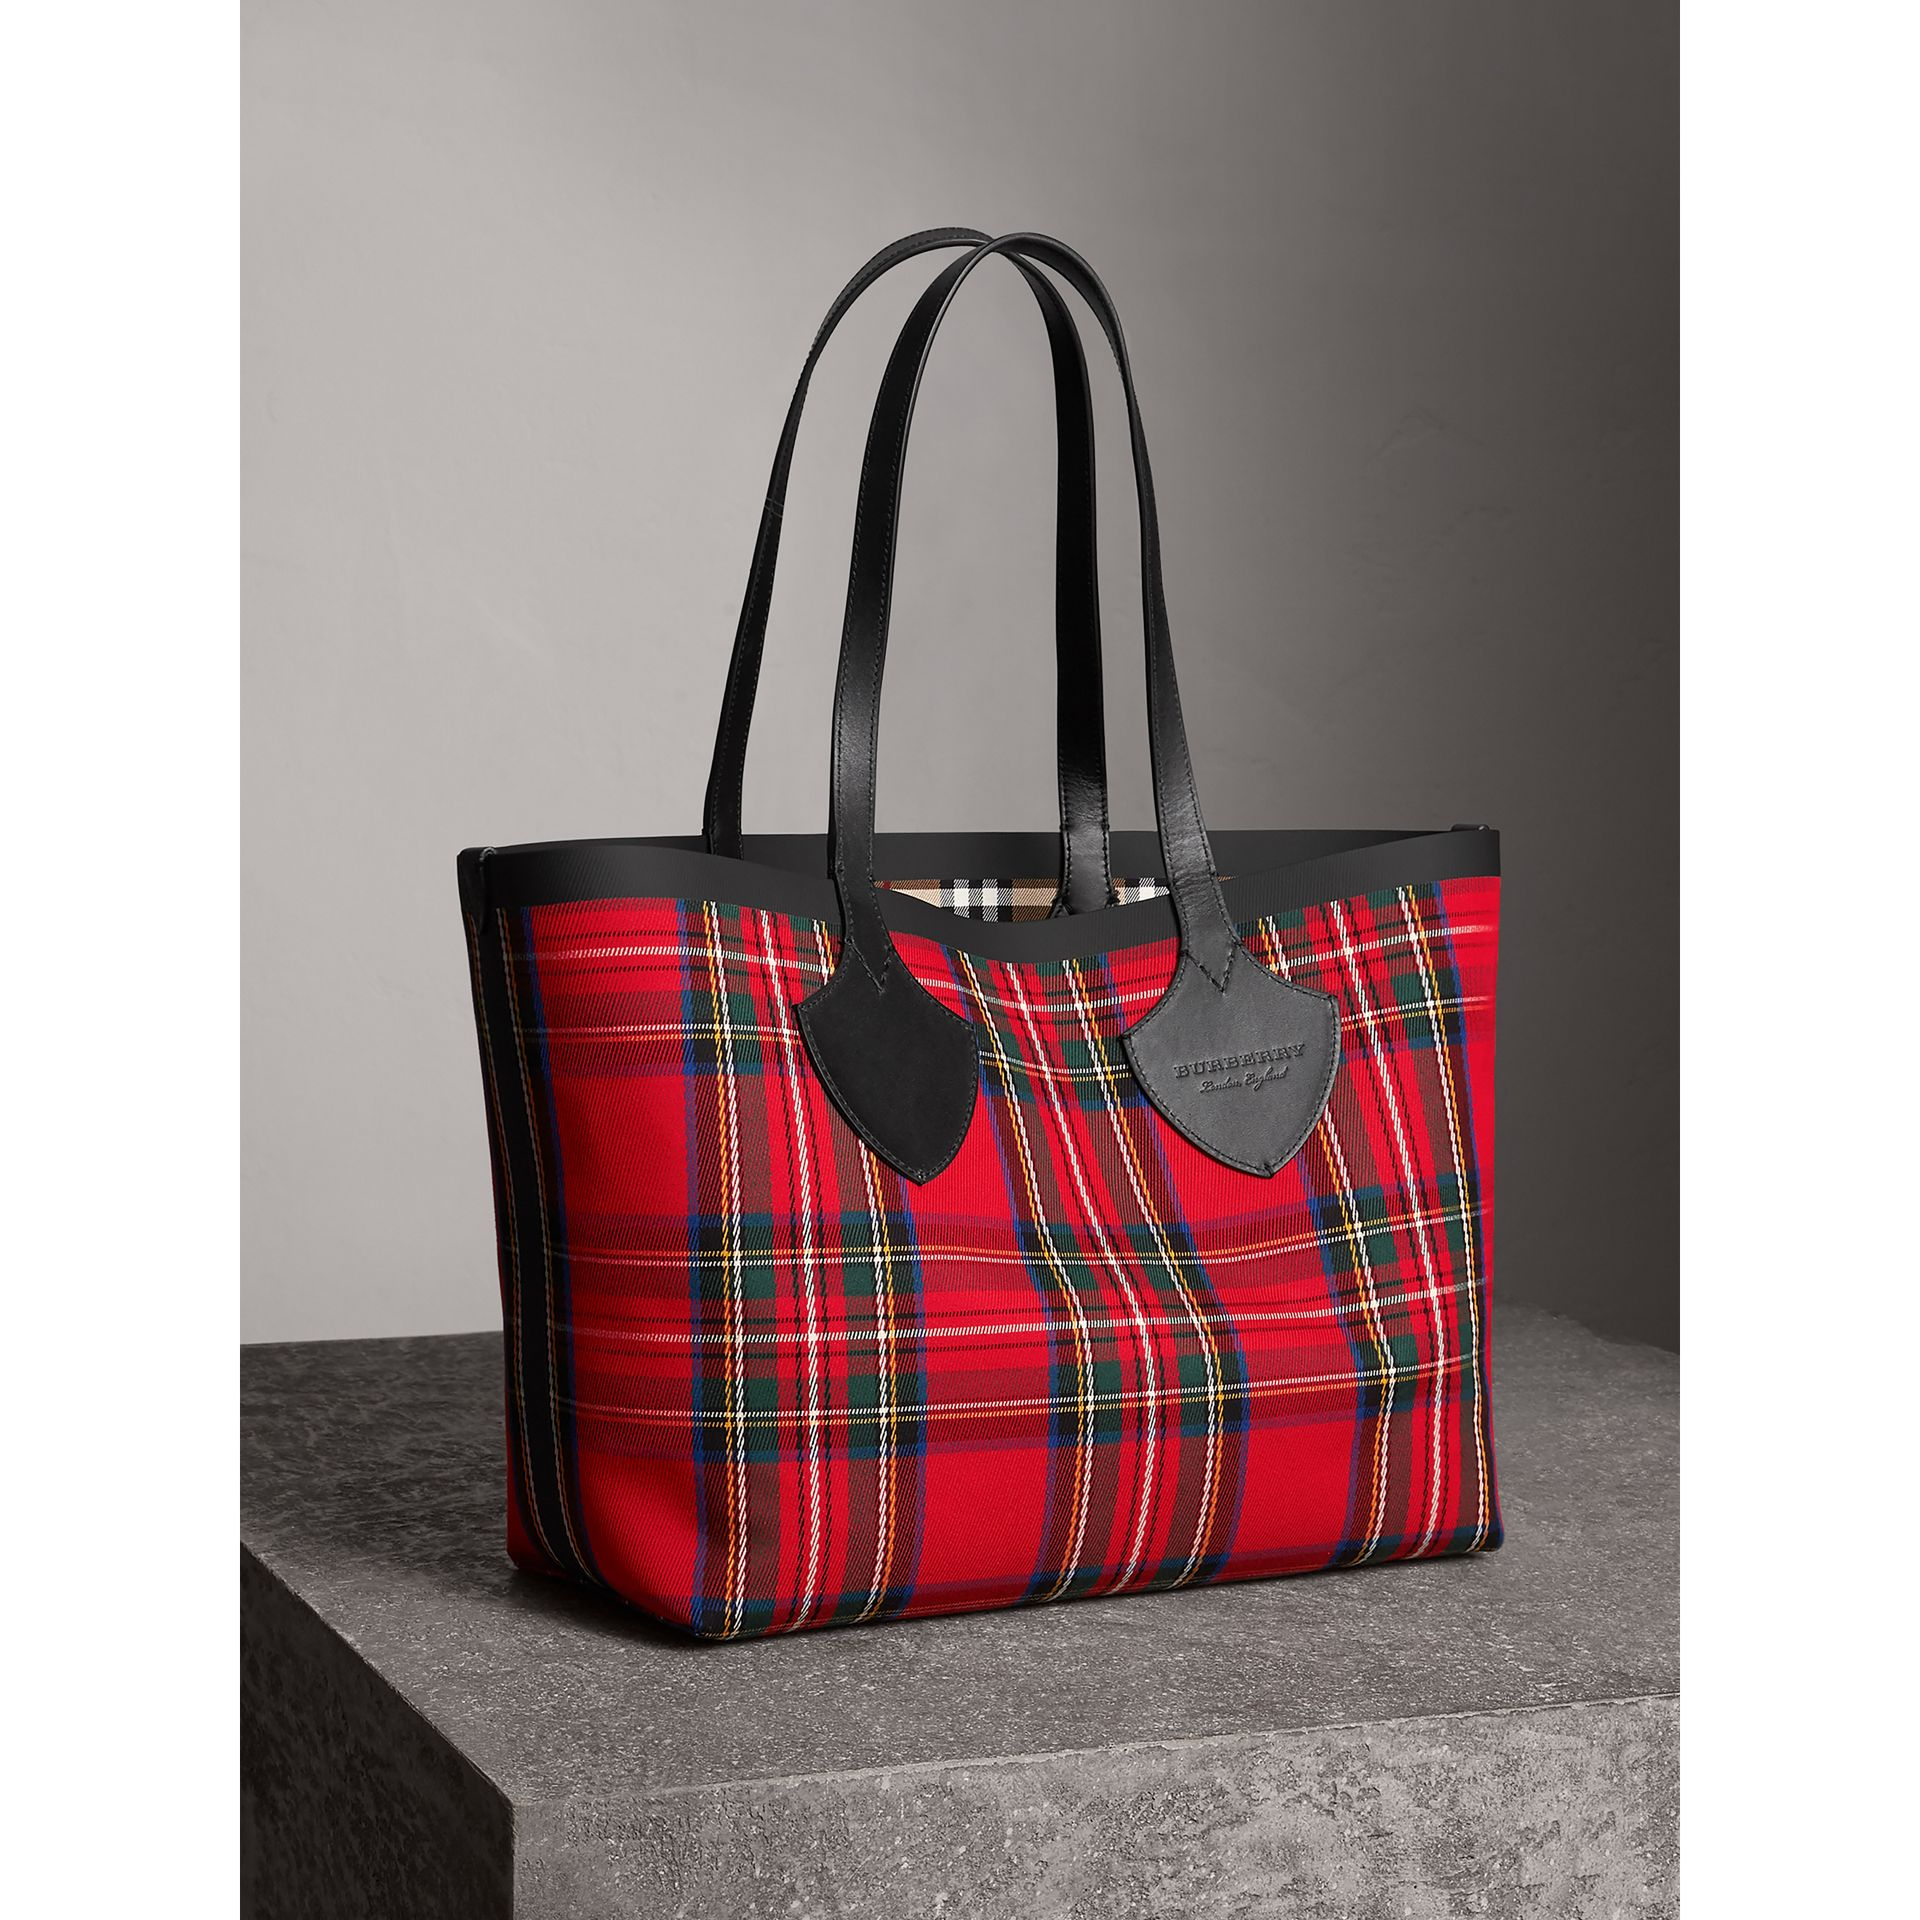 Sac tote The Giant moyen en Vintage check (Jaune Antique/rouge Vif) | Burberry - photo de la galerie 7